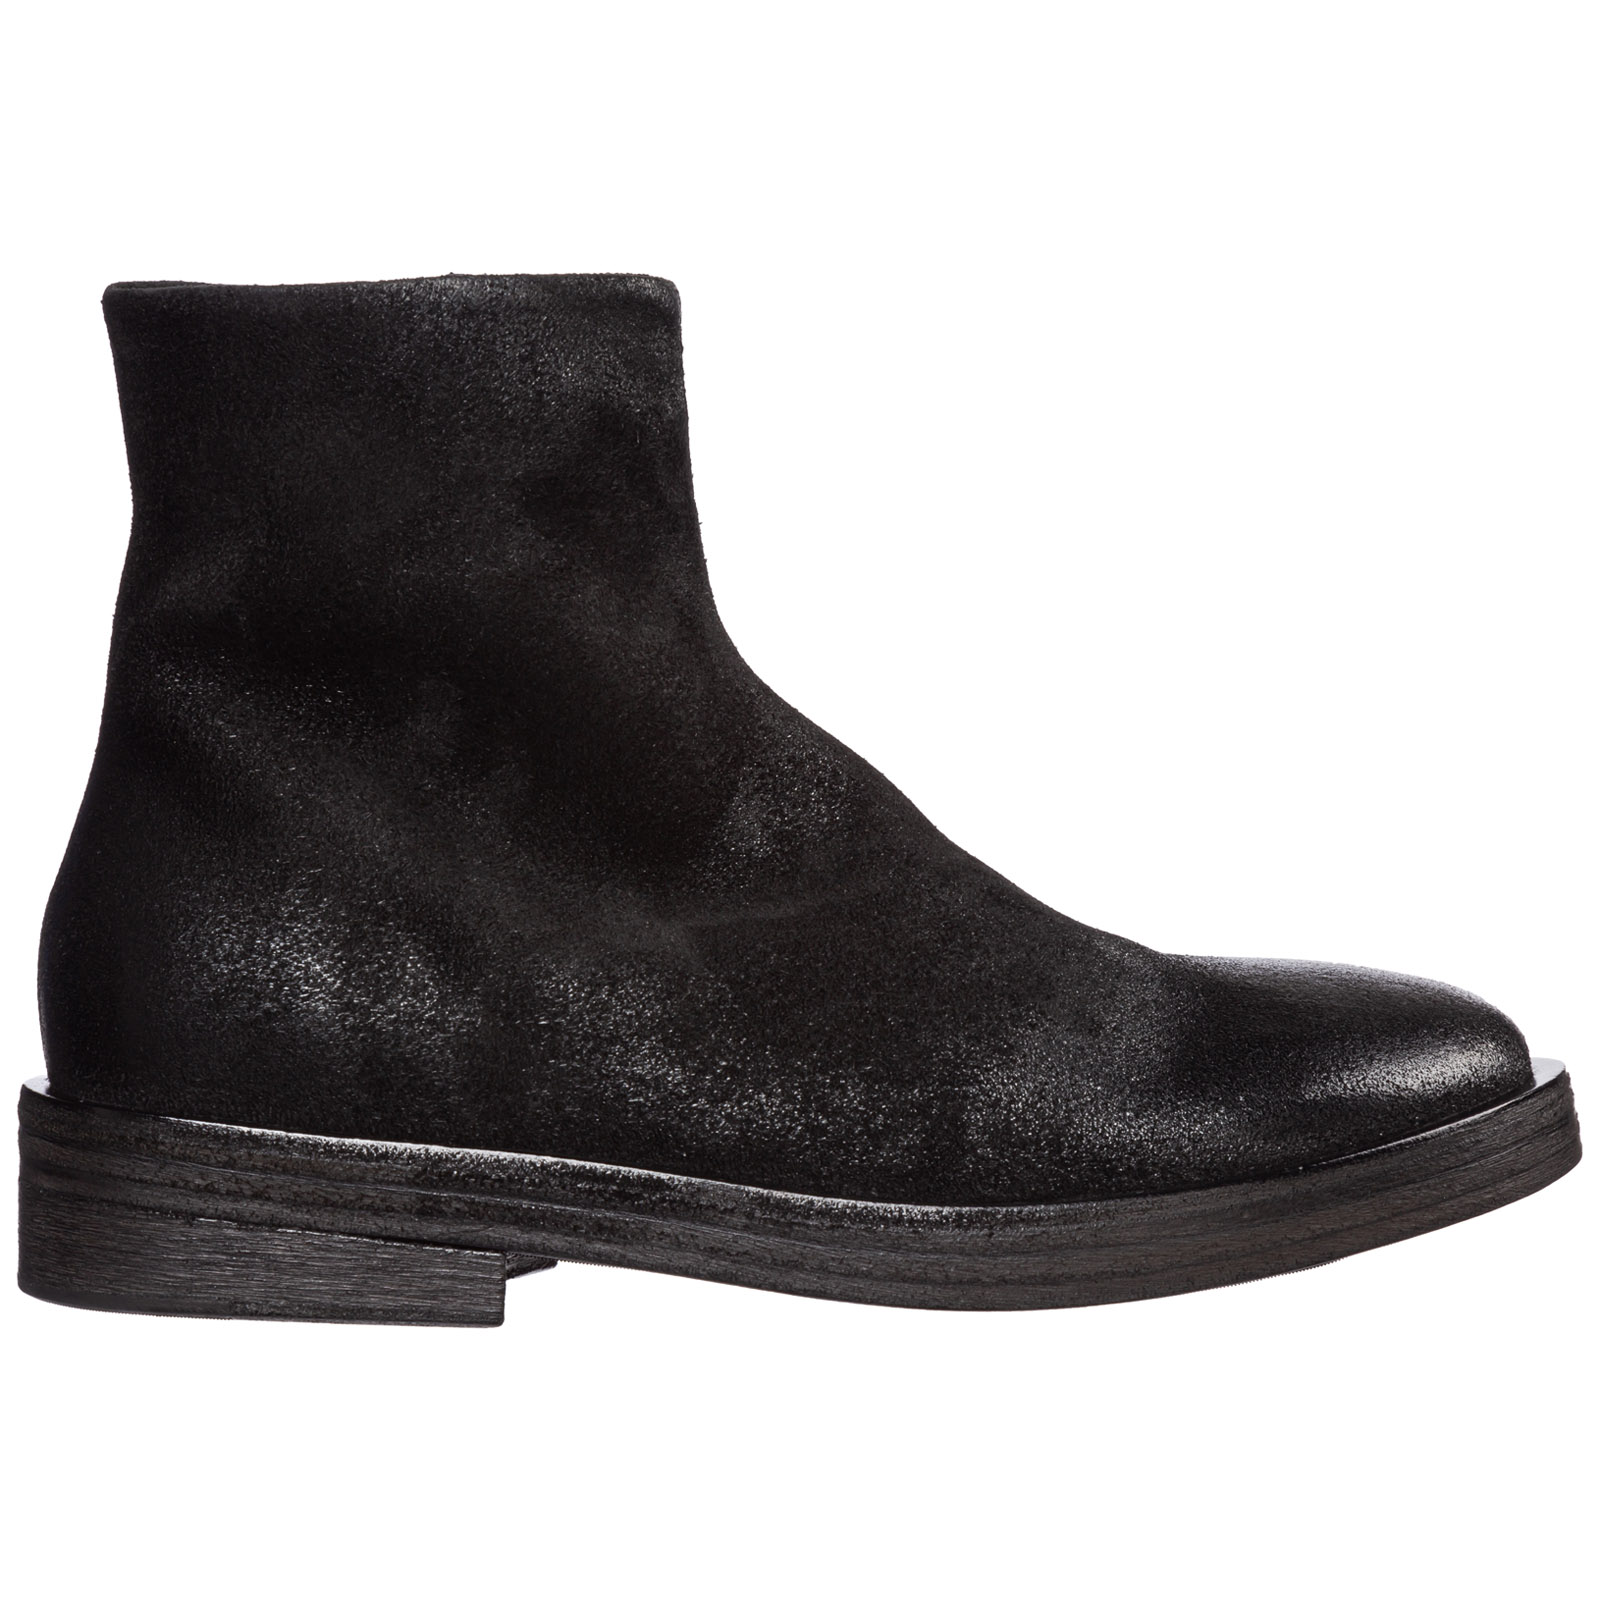 Marsèll Boots MEN'S GENUINE LEATHER ANKLE BOOTS